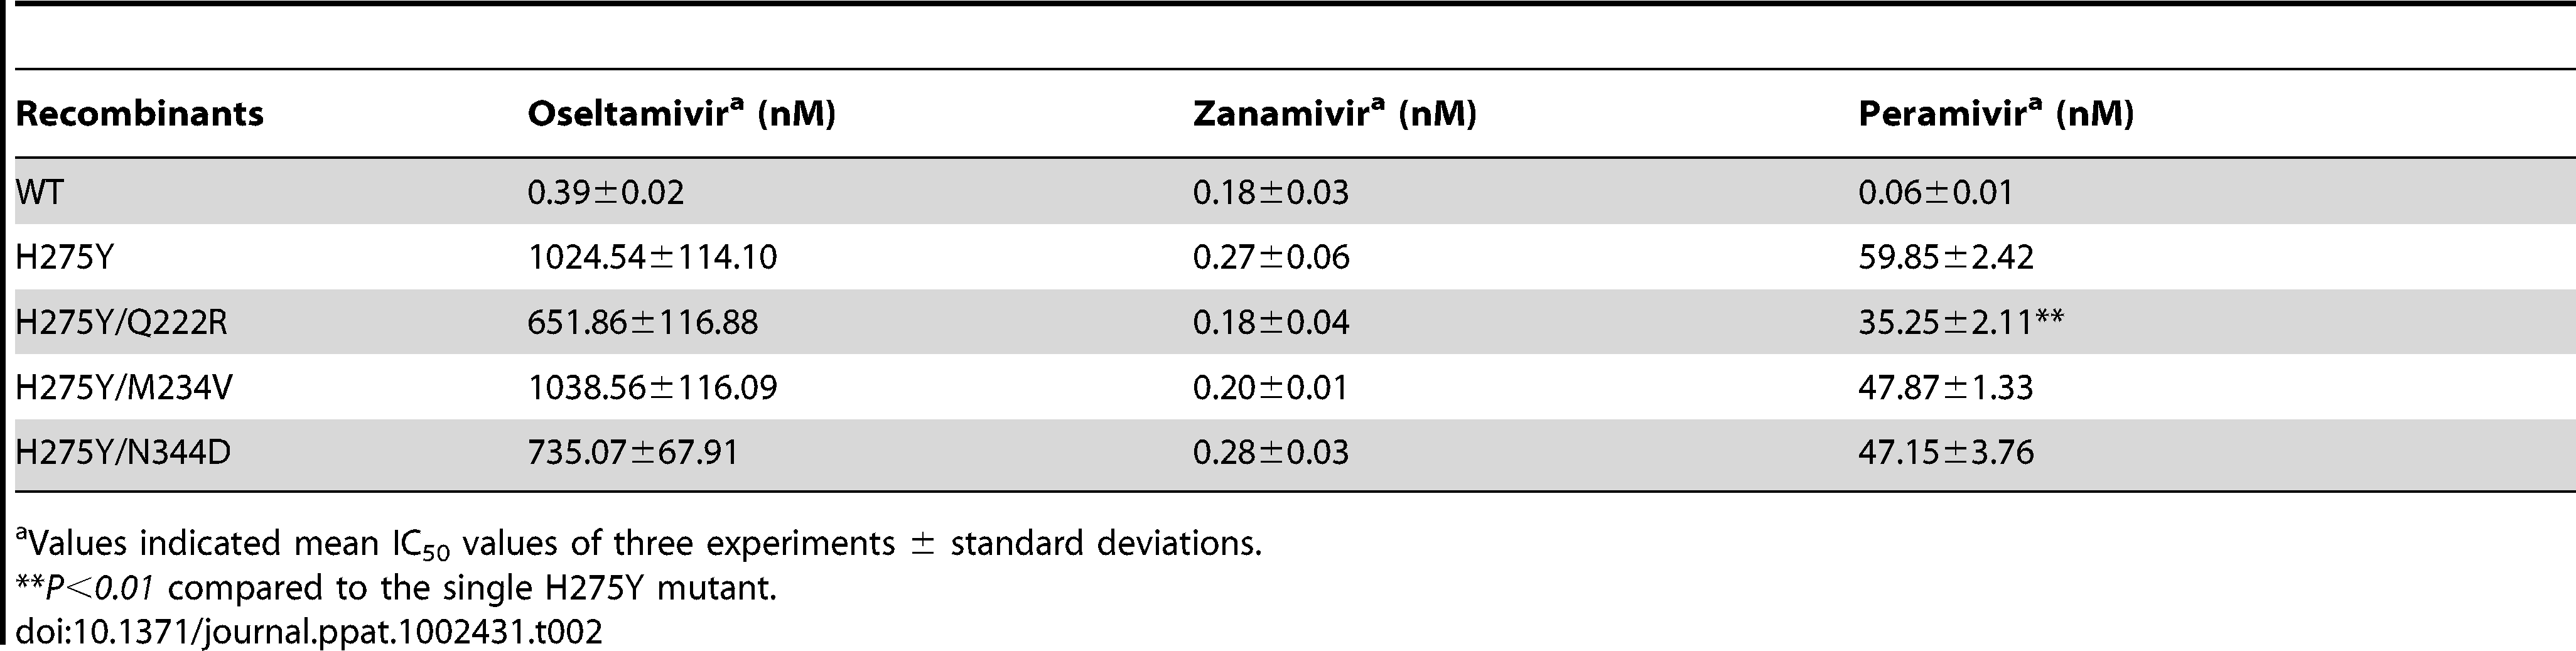 Susceptibility profiles of recombinant A/Brisbane/59/2007-like (H1N1) viruses against neuraminidase (NA) inhibitors as assessed by MUNANA NA inhibition assays.